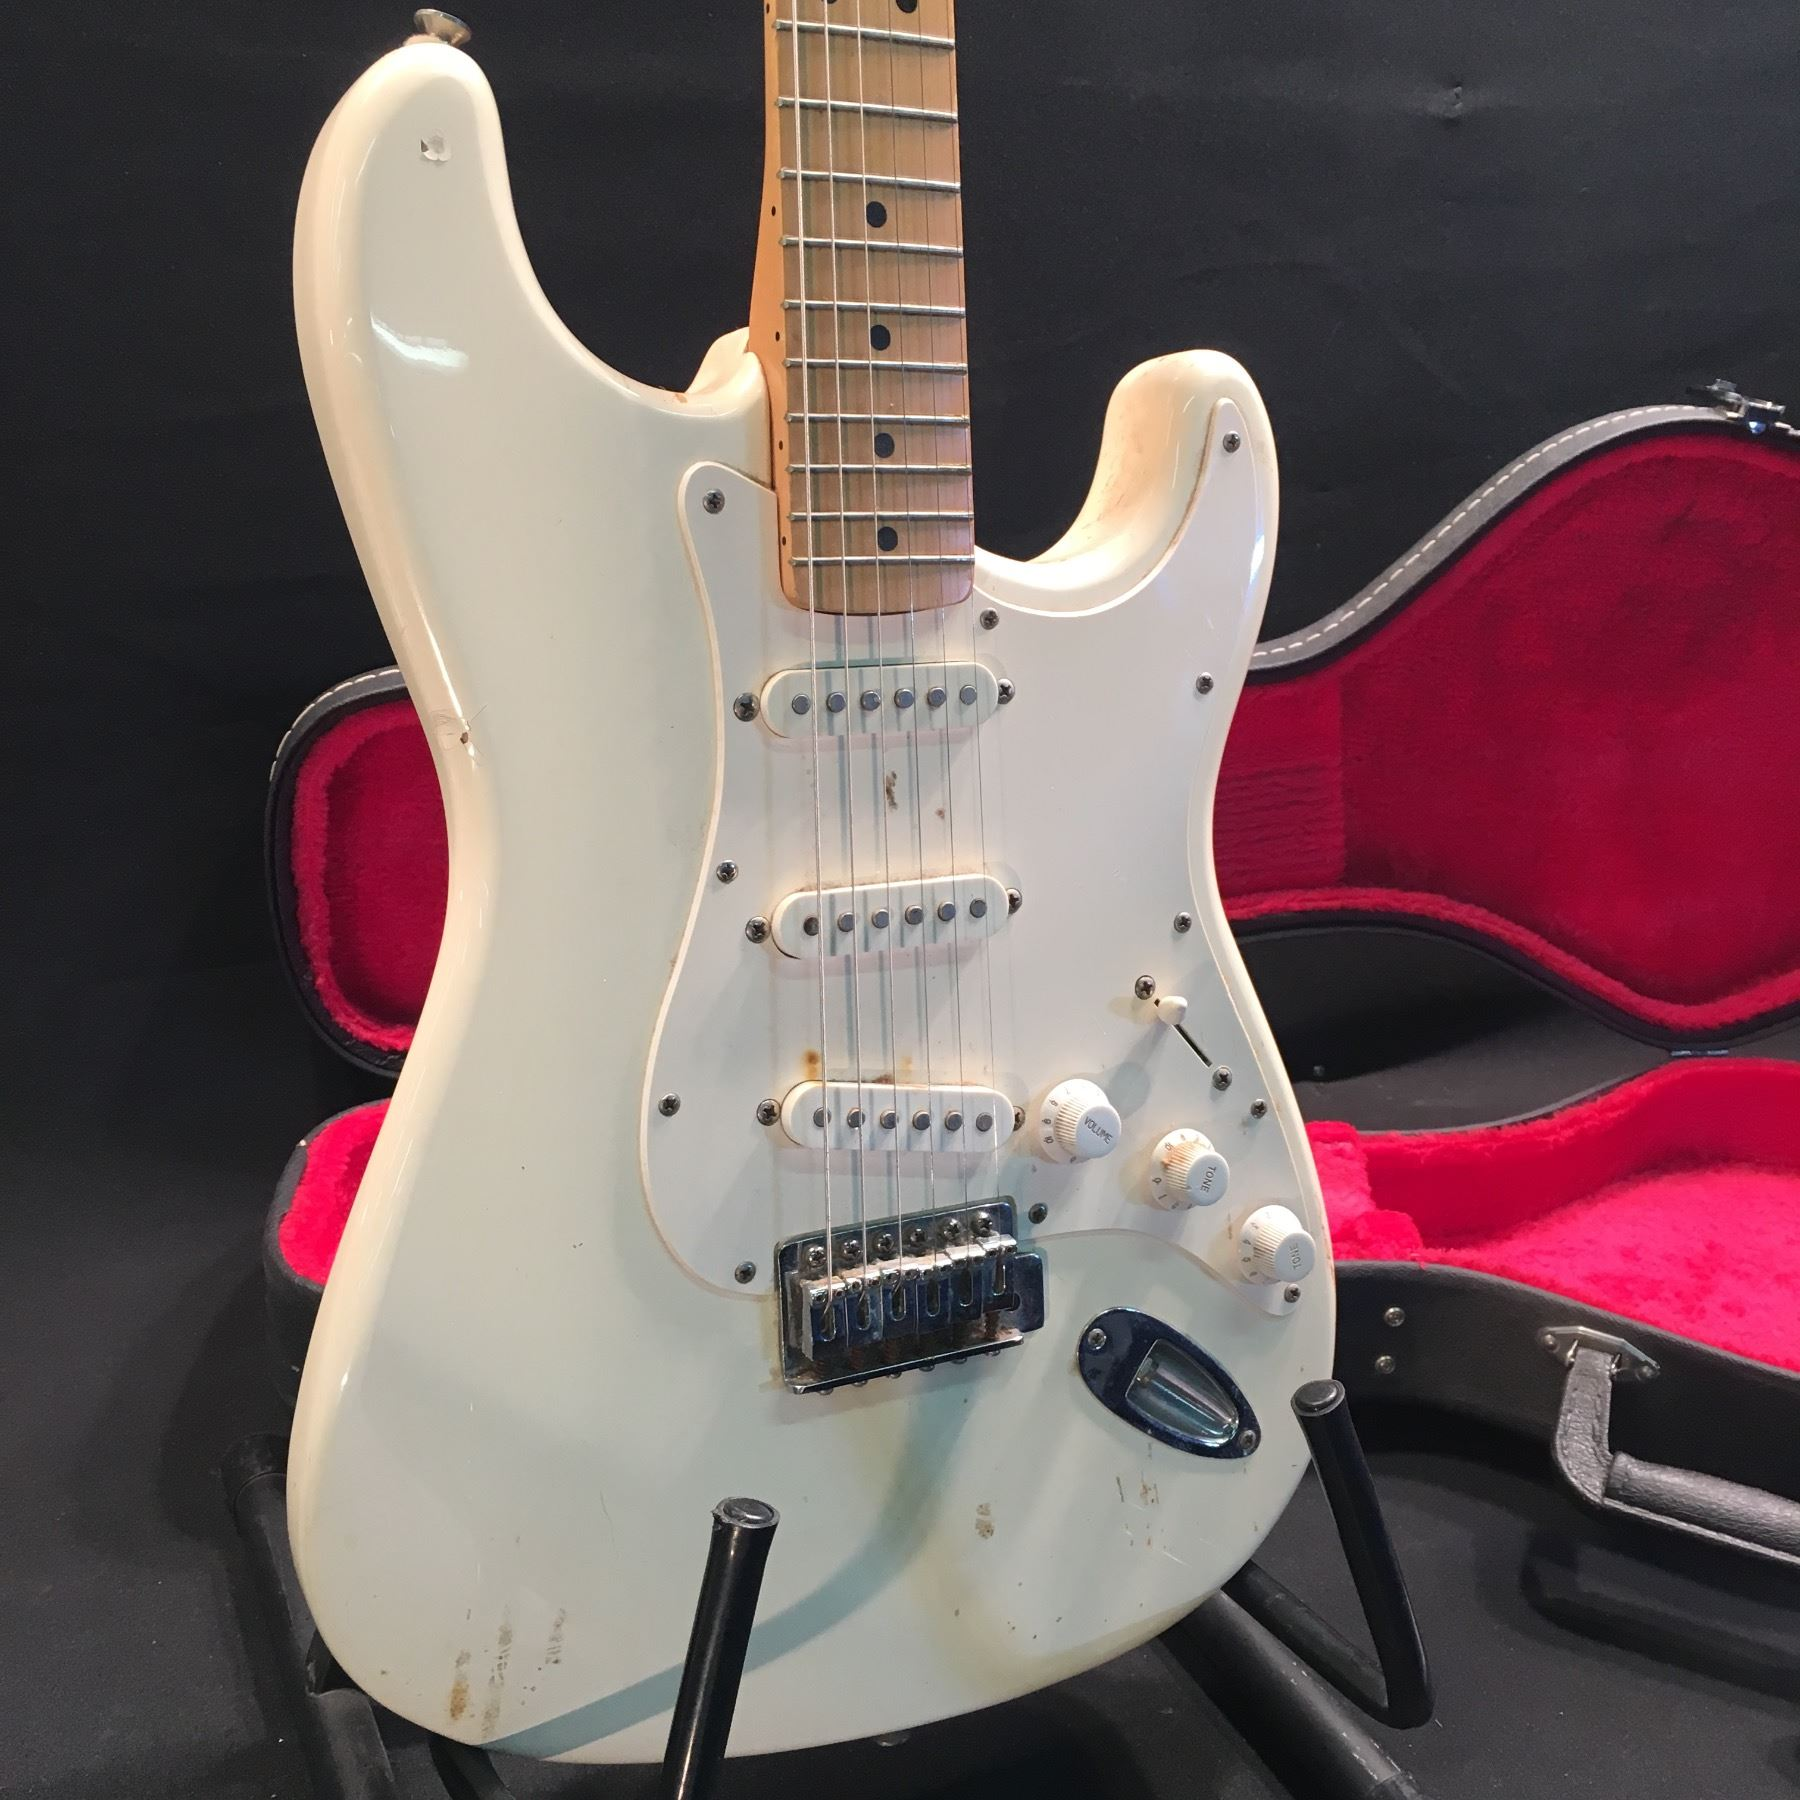 fender stratocaster guitar made in mexico serial number mn410267 with three single coil. Black Bedroom Furniture Sets. Home Design Ideas